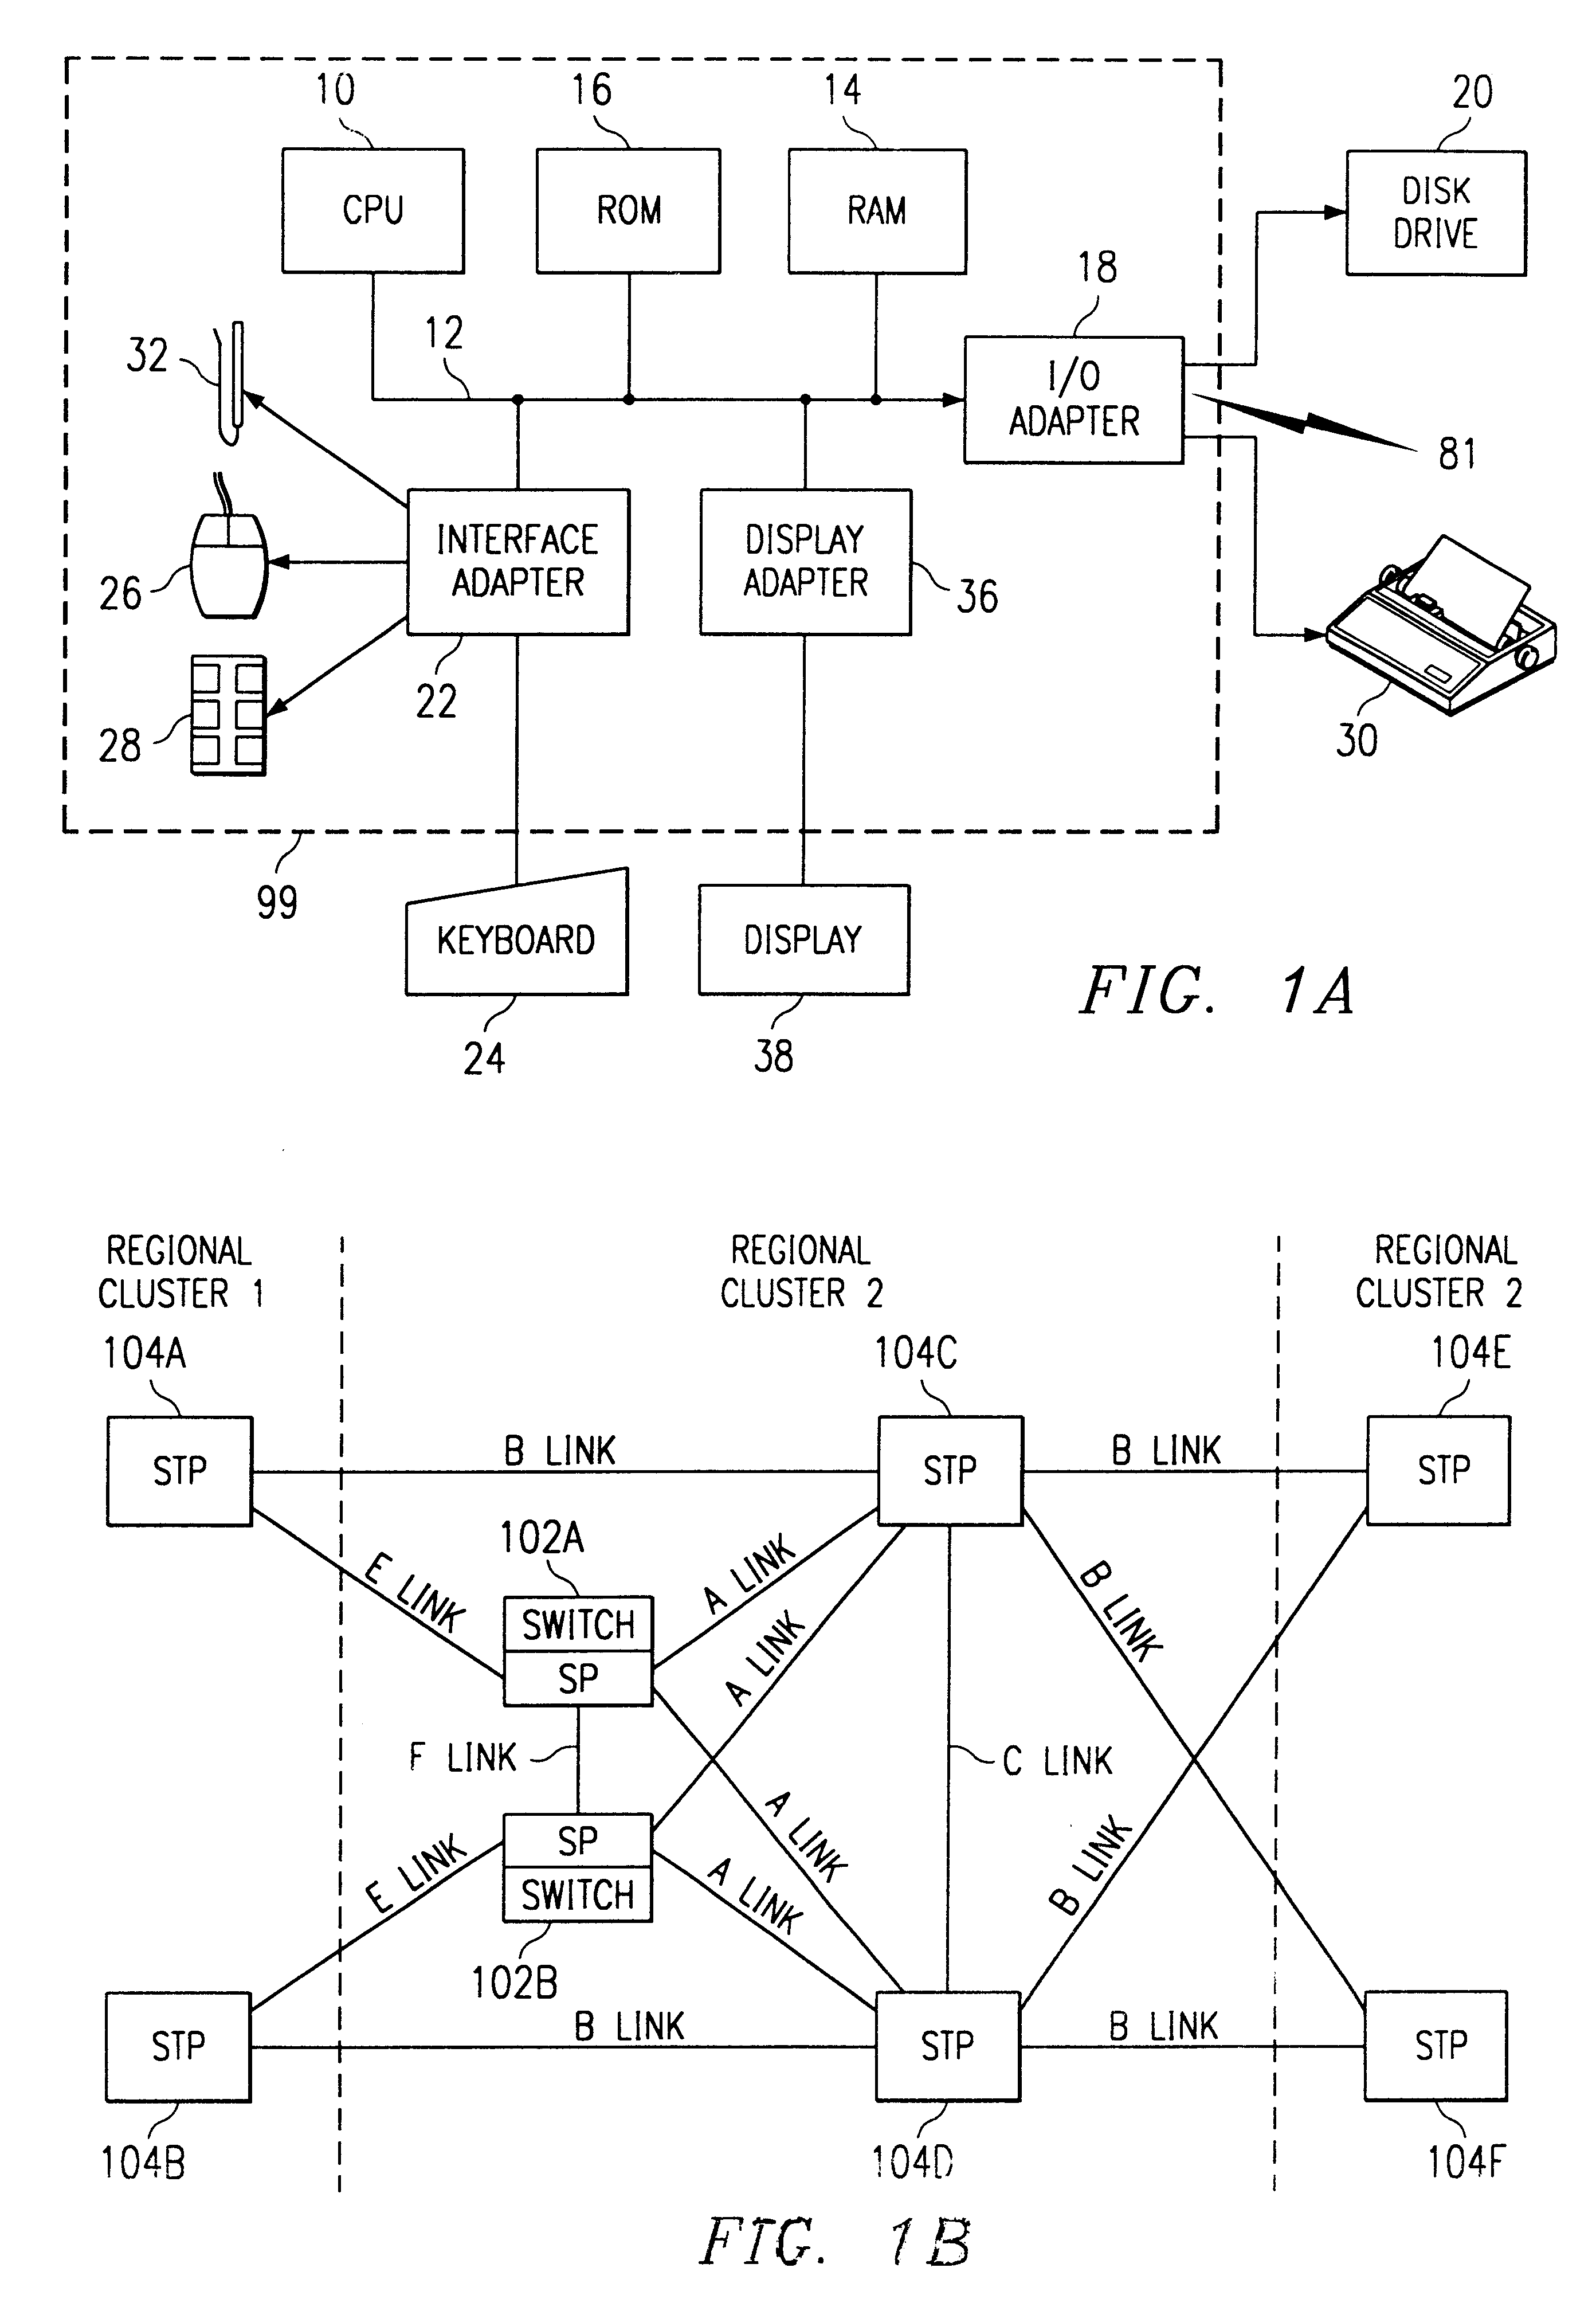 Patent Us 6335927 B1 Fig 42 Block Diagram Simplified Of The Tdm System Architecture